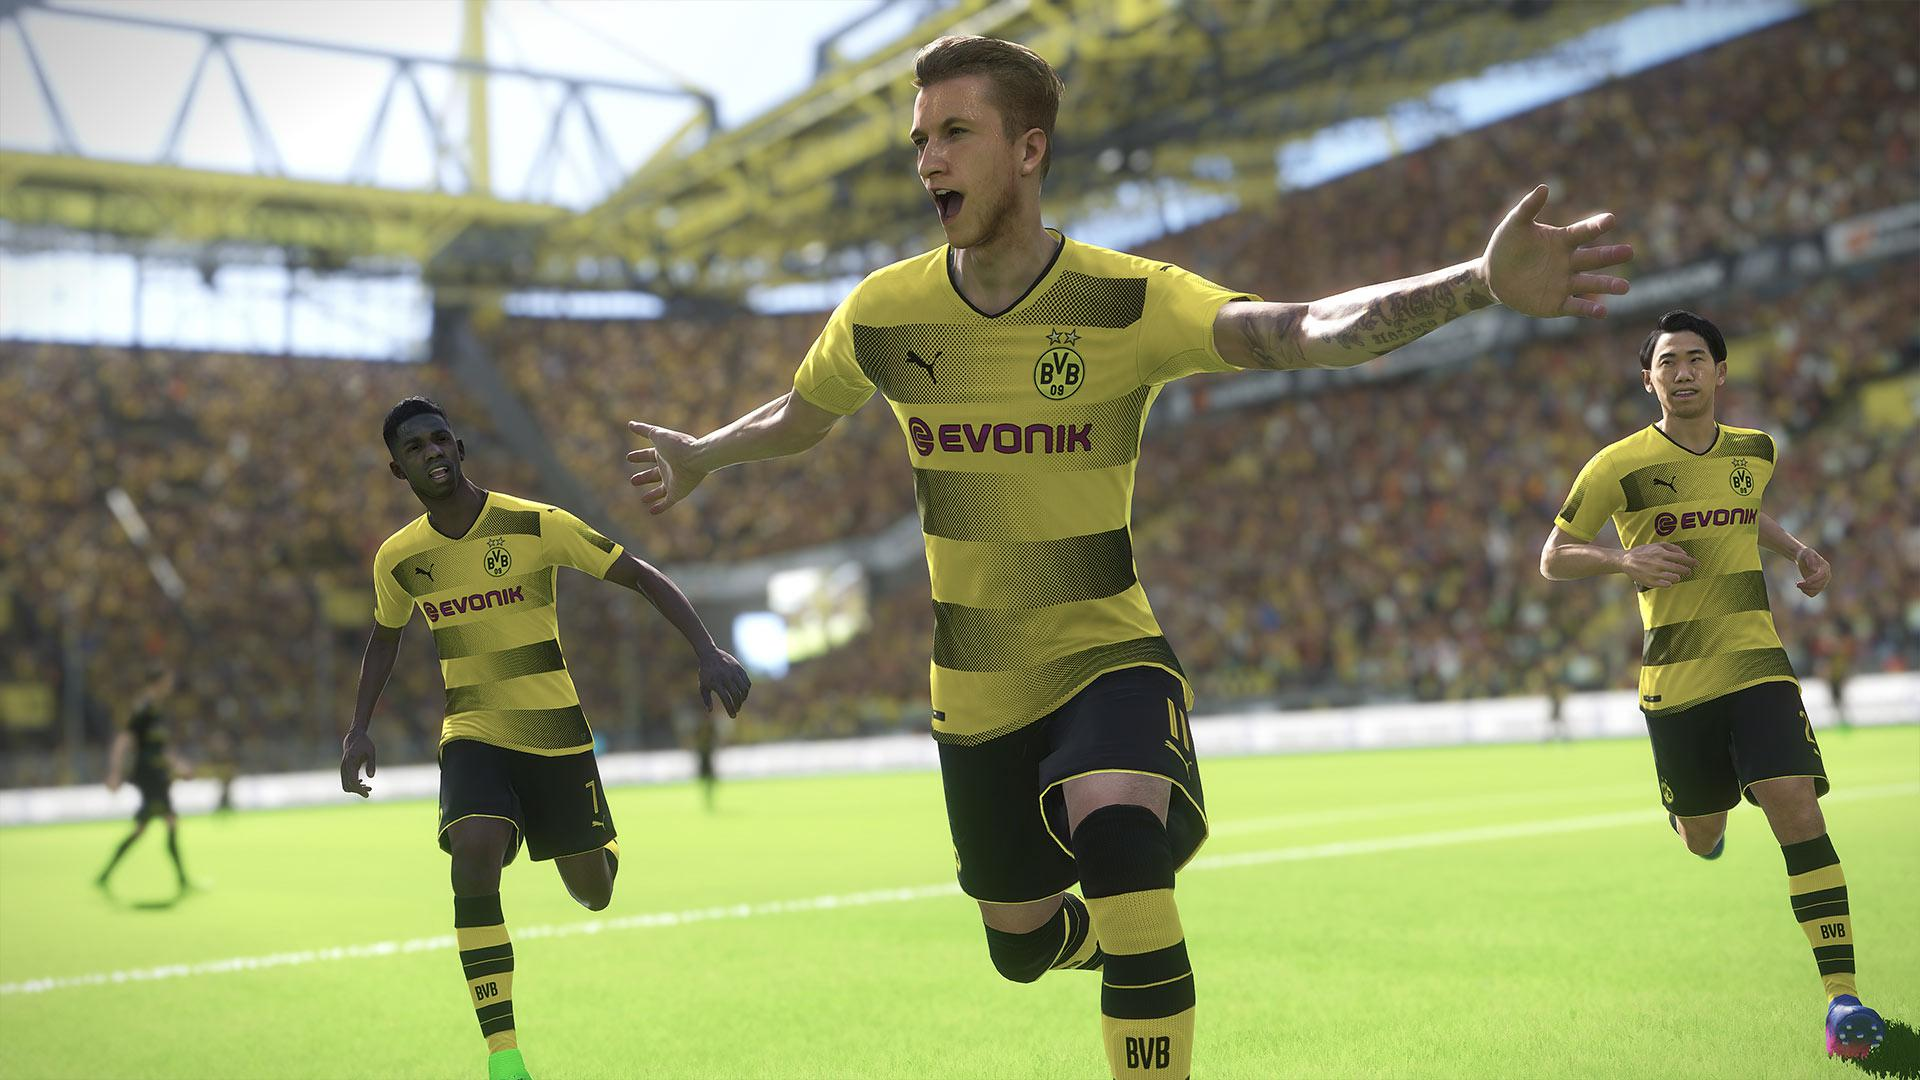 PES 2018's gameplay is worryingly additive